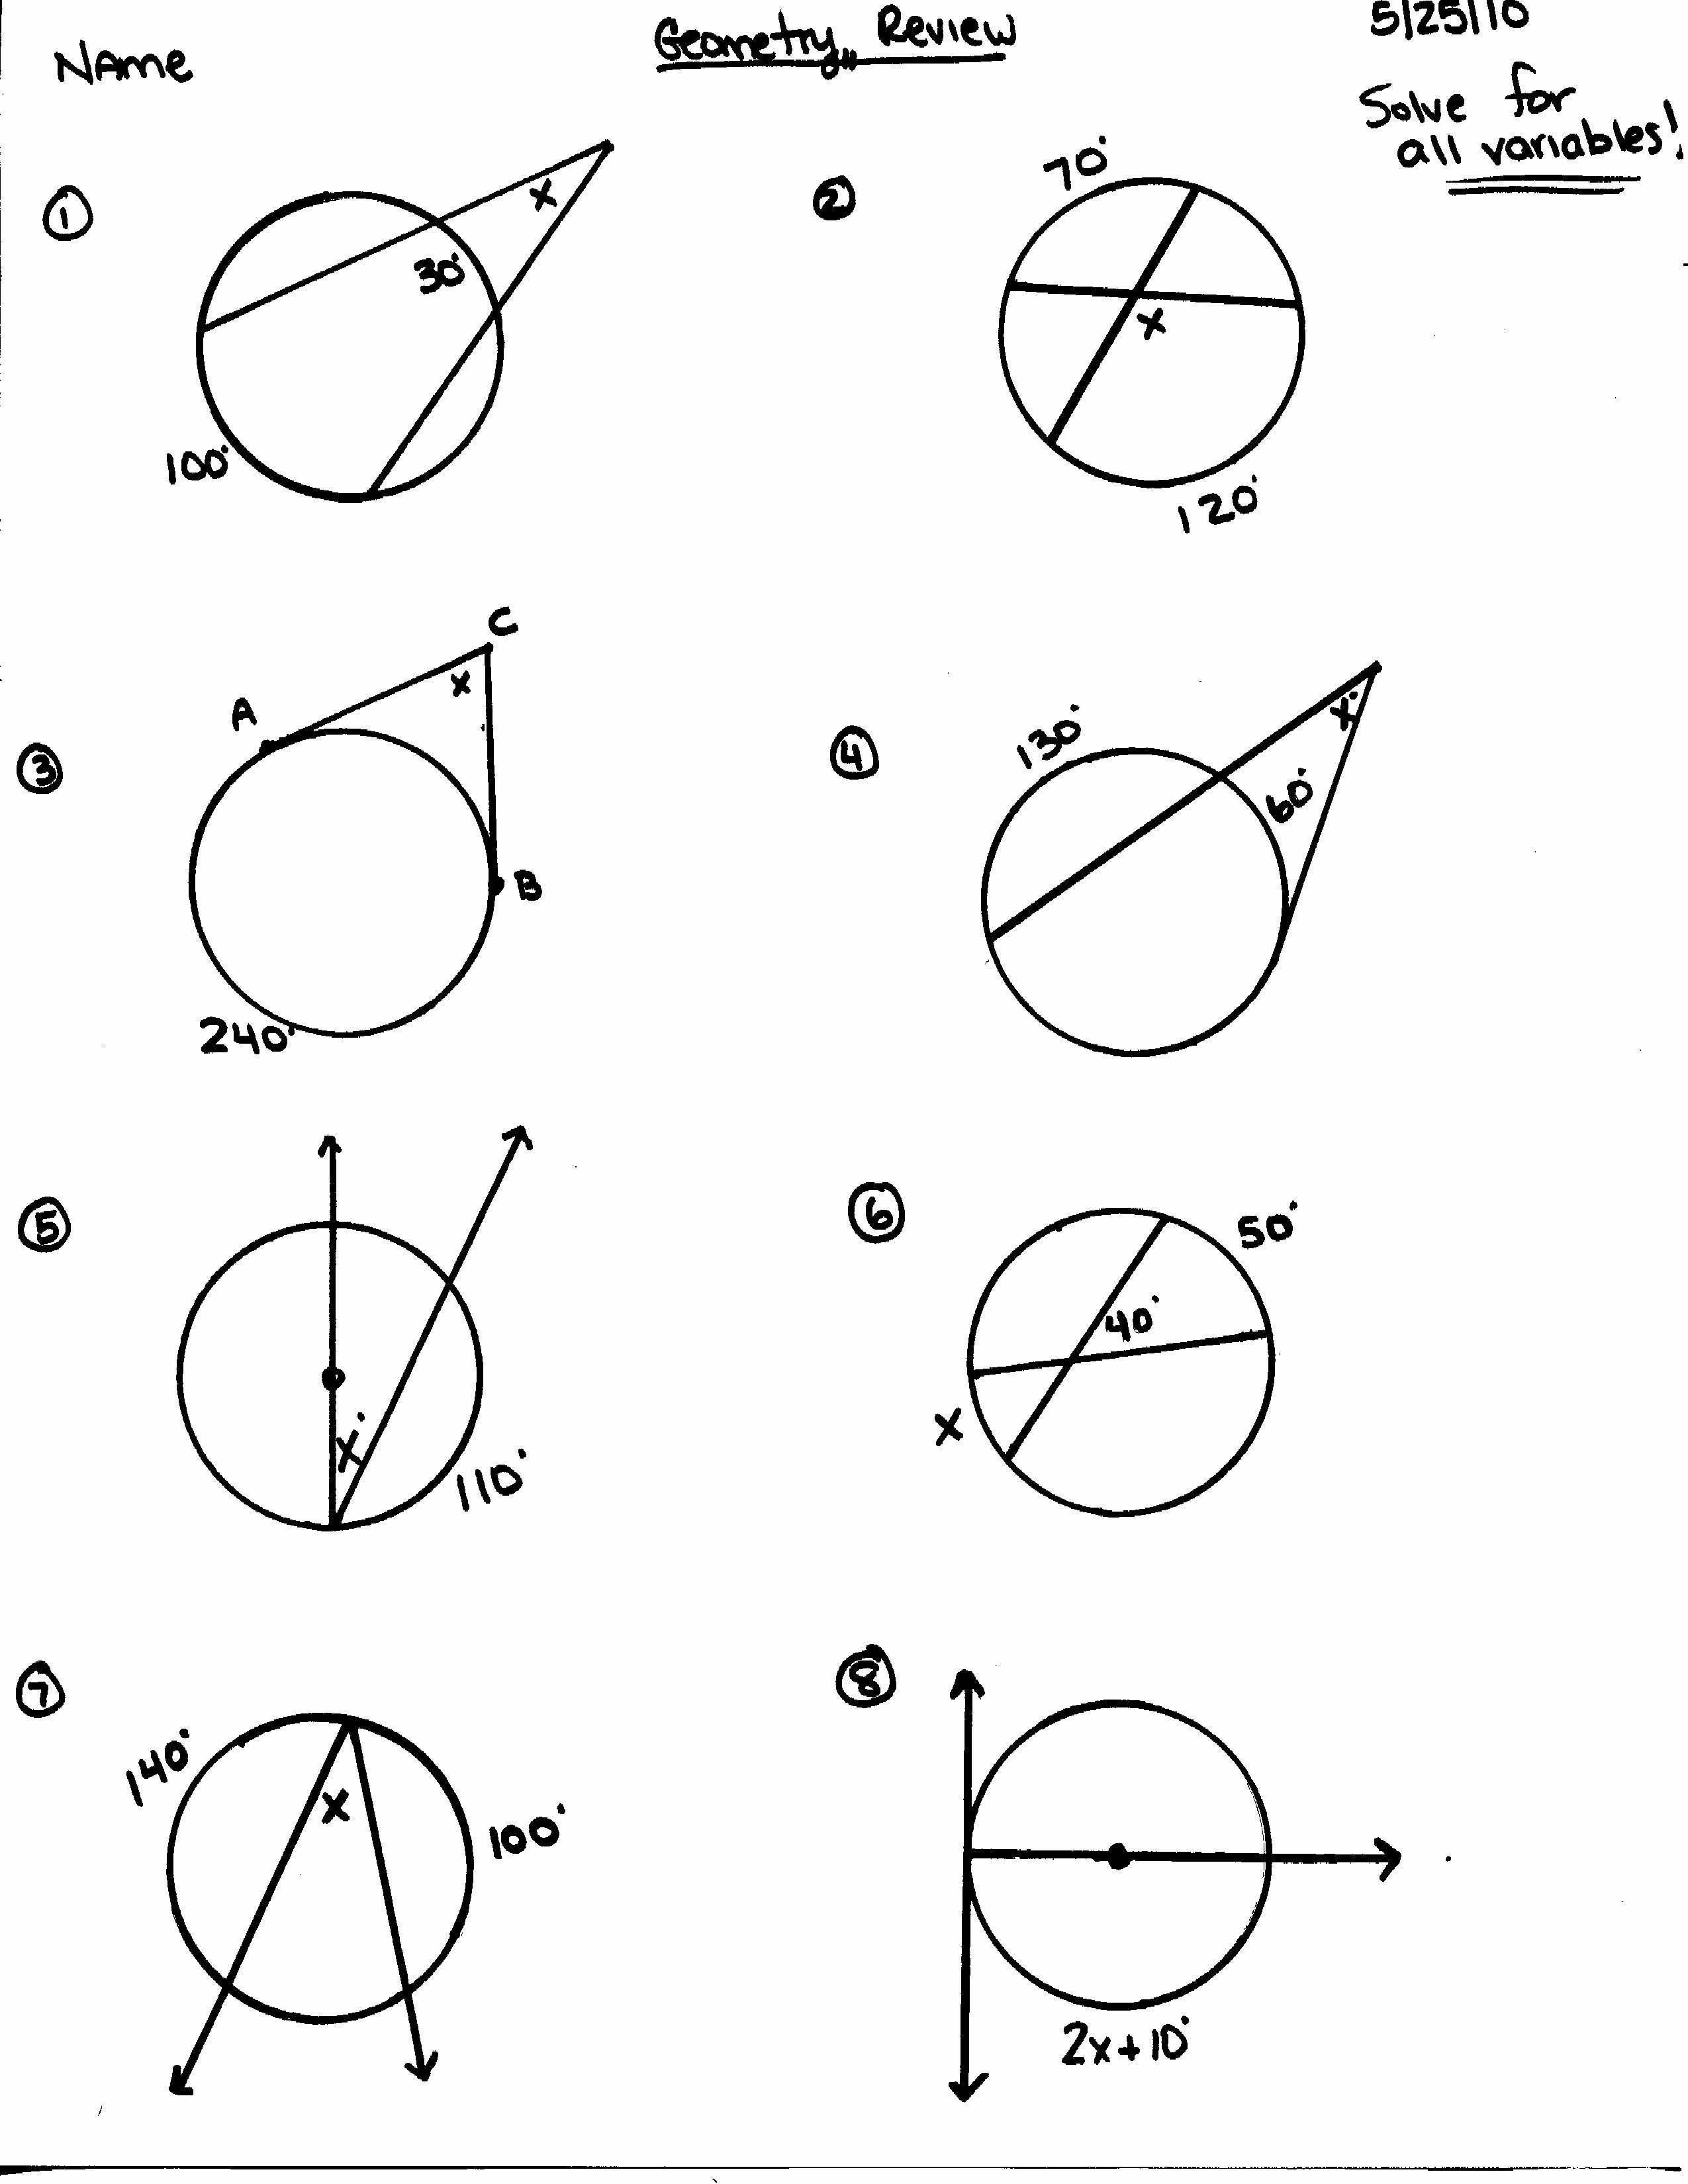 medium resolution of Angles In A Circle Worksheet Lovely Circle theorems Match Up by Debbs  Bridgman – Chessmuseum Template Libra…   Geometry proofs